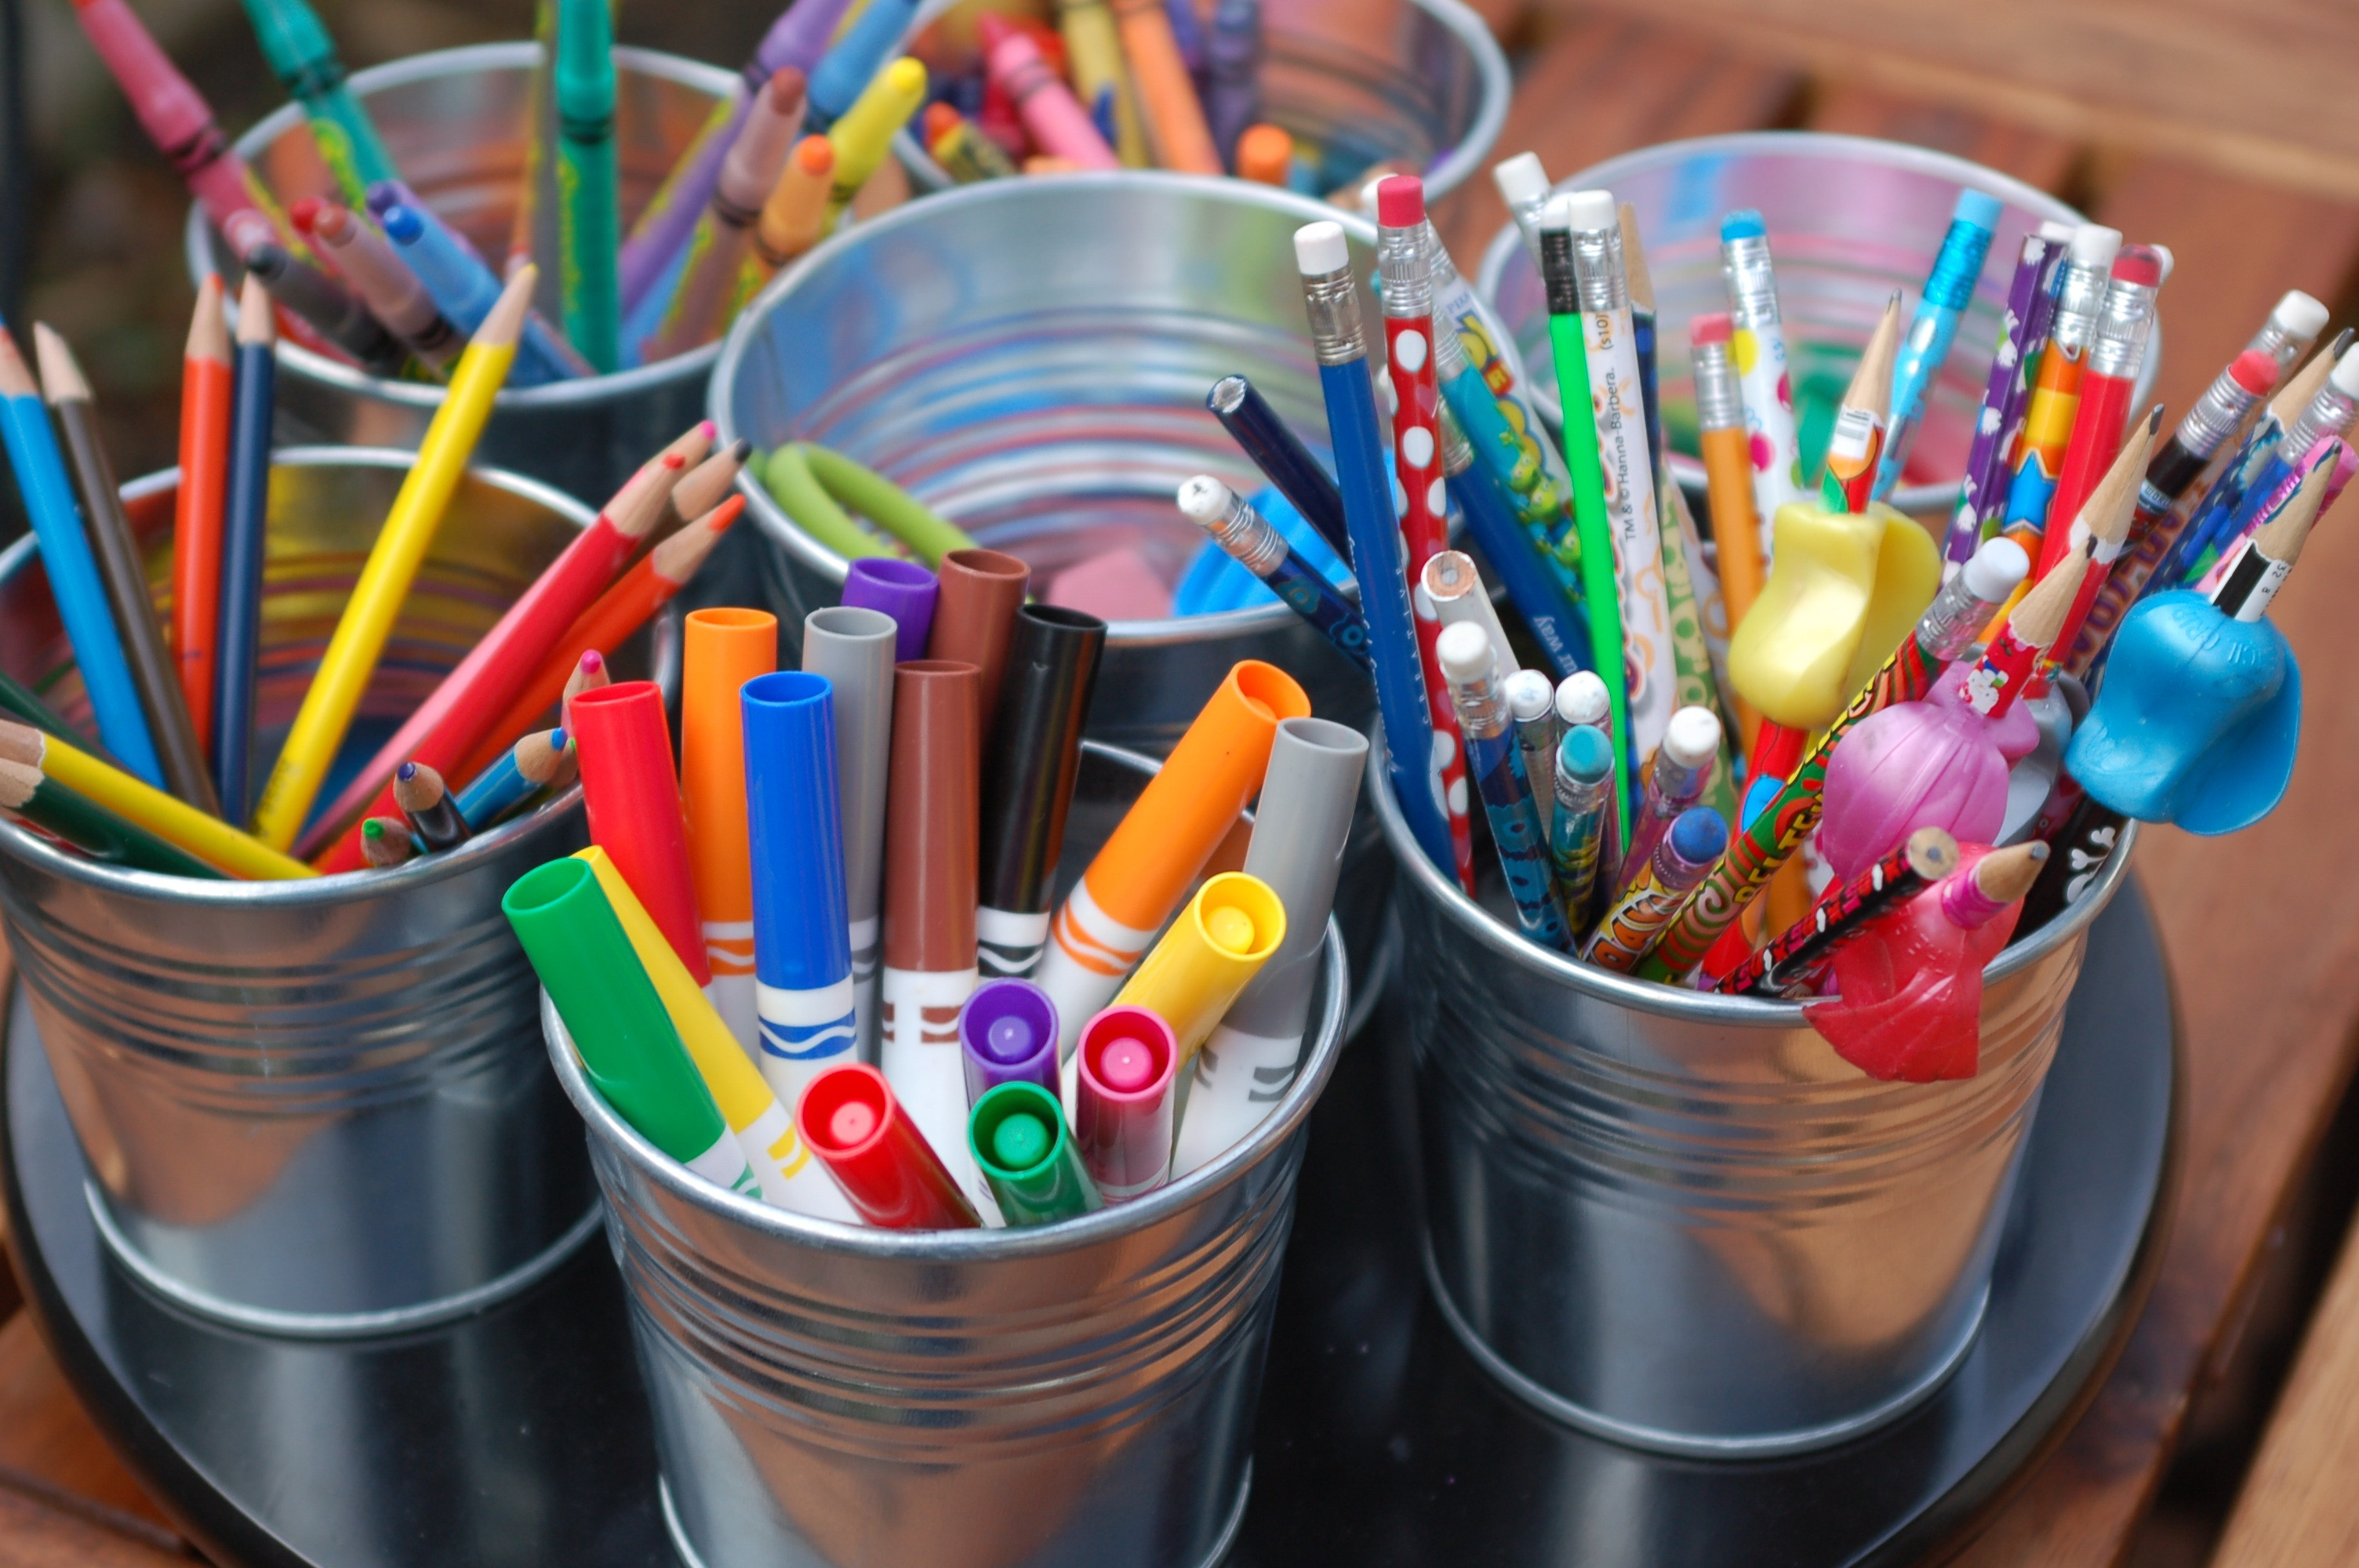 Best ideas about Art And Crafts . Save or Pin Longview School Arts and Crafts Longview School Now.